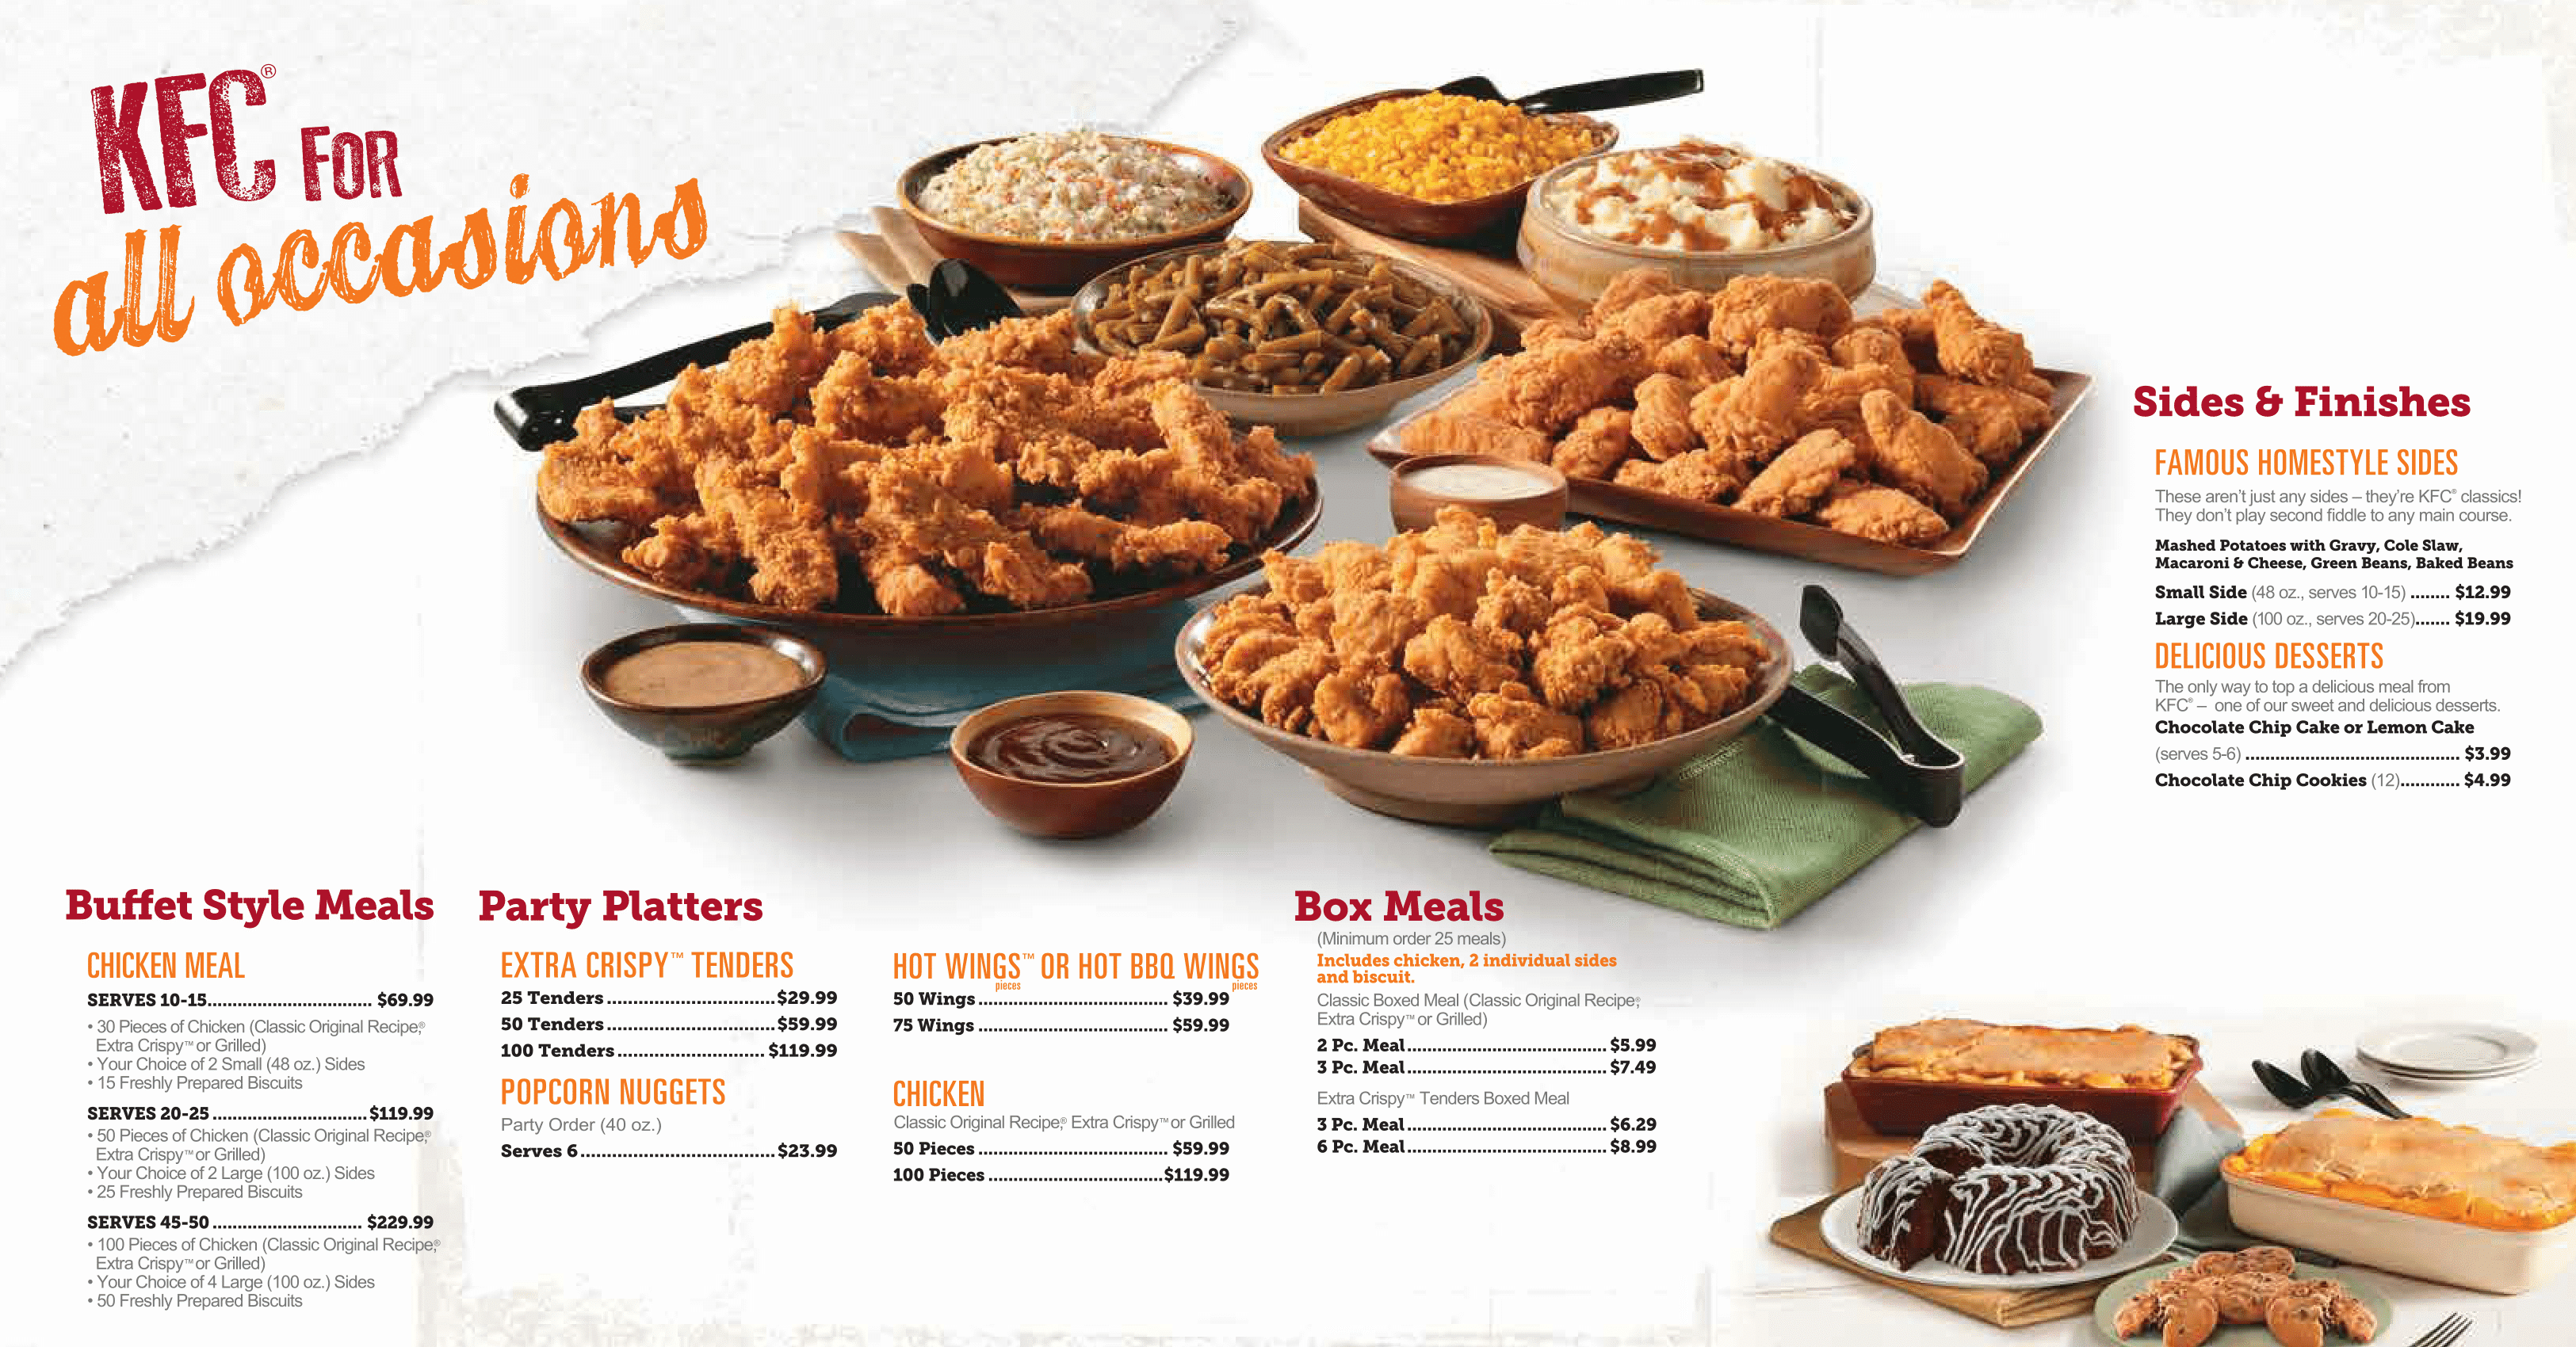 Kfc Catering Menu Prices View Kfc Catering Menu Here Catering Menu Fast Food Advertising Dessert Buffet